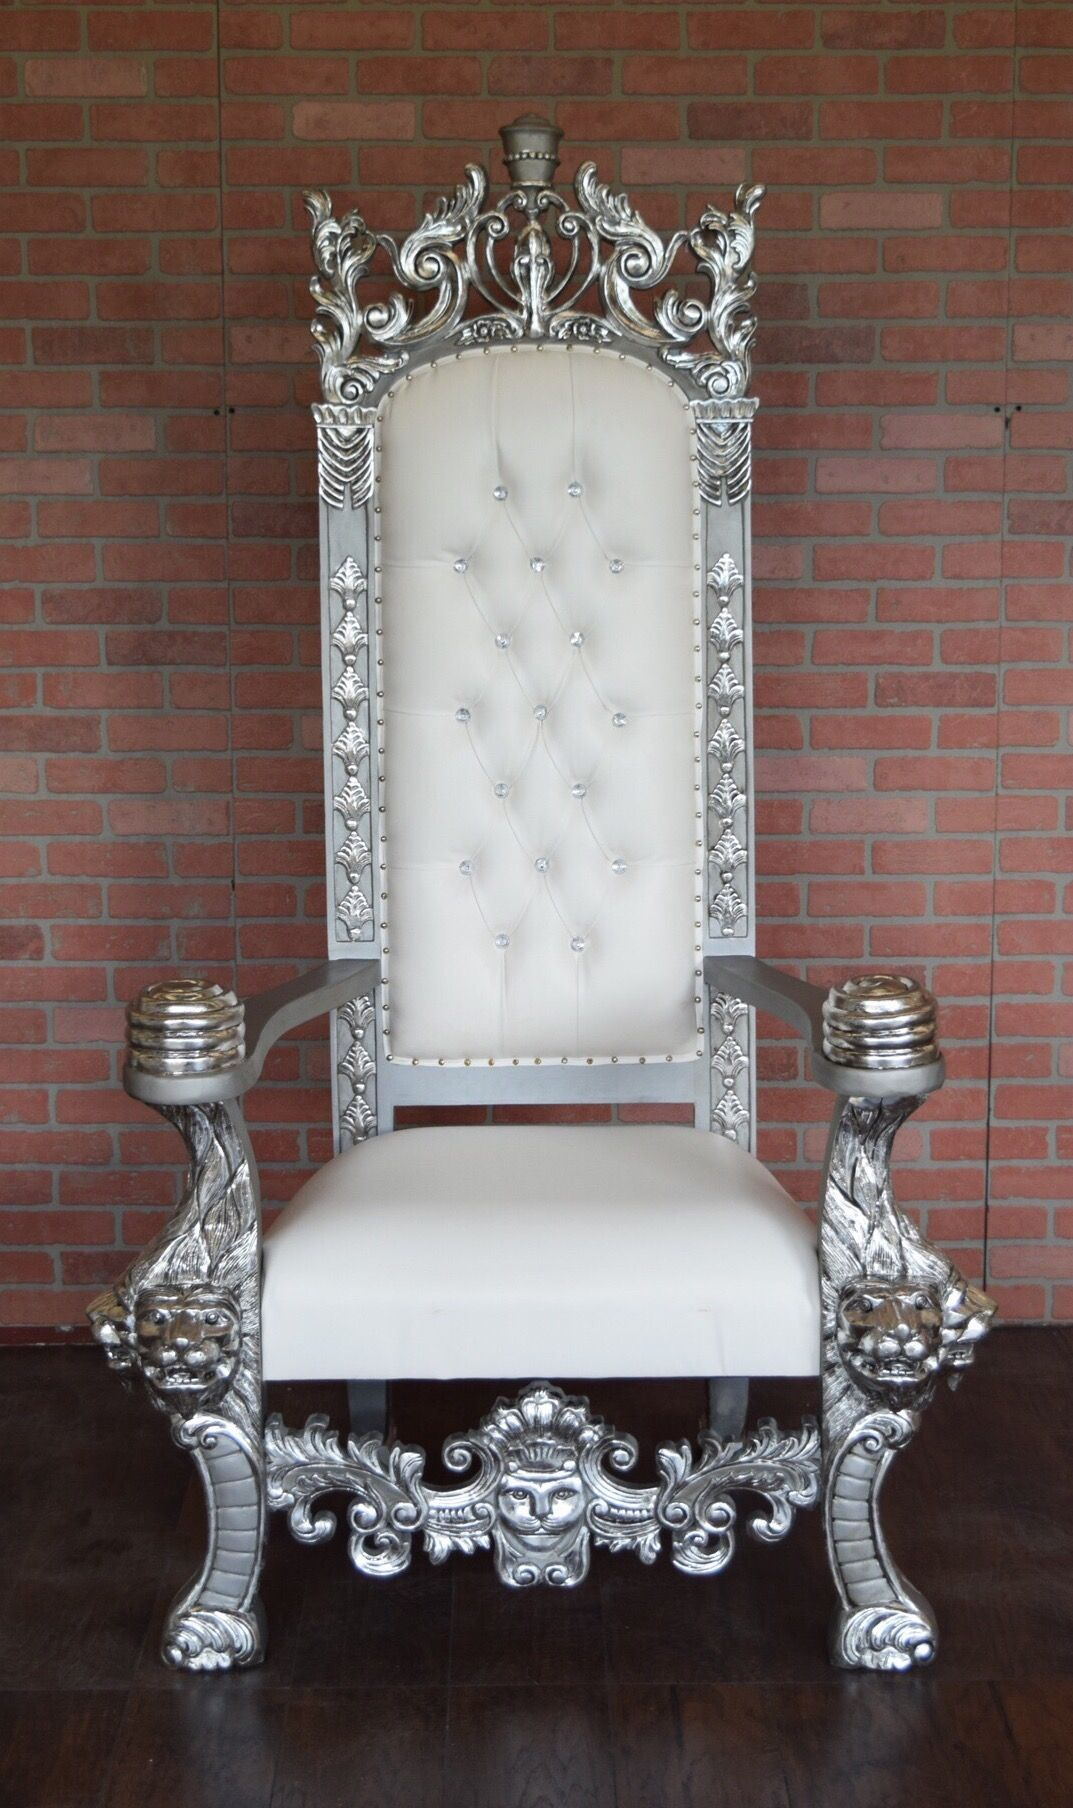 Absolom Roche King Henry Lion Throne Chair Silver White